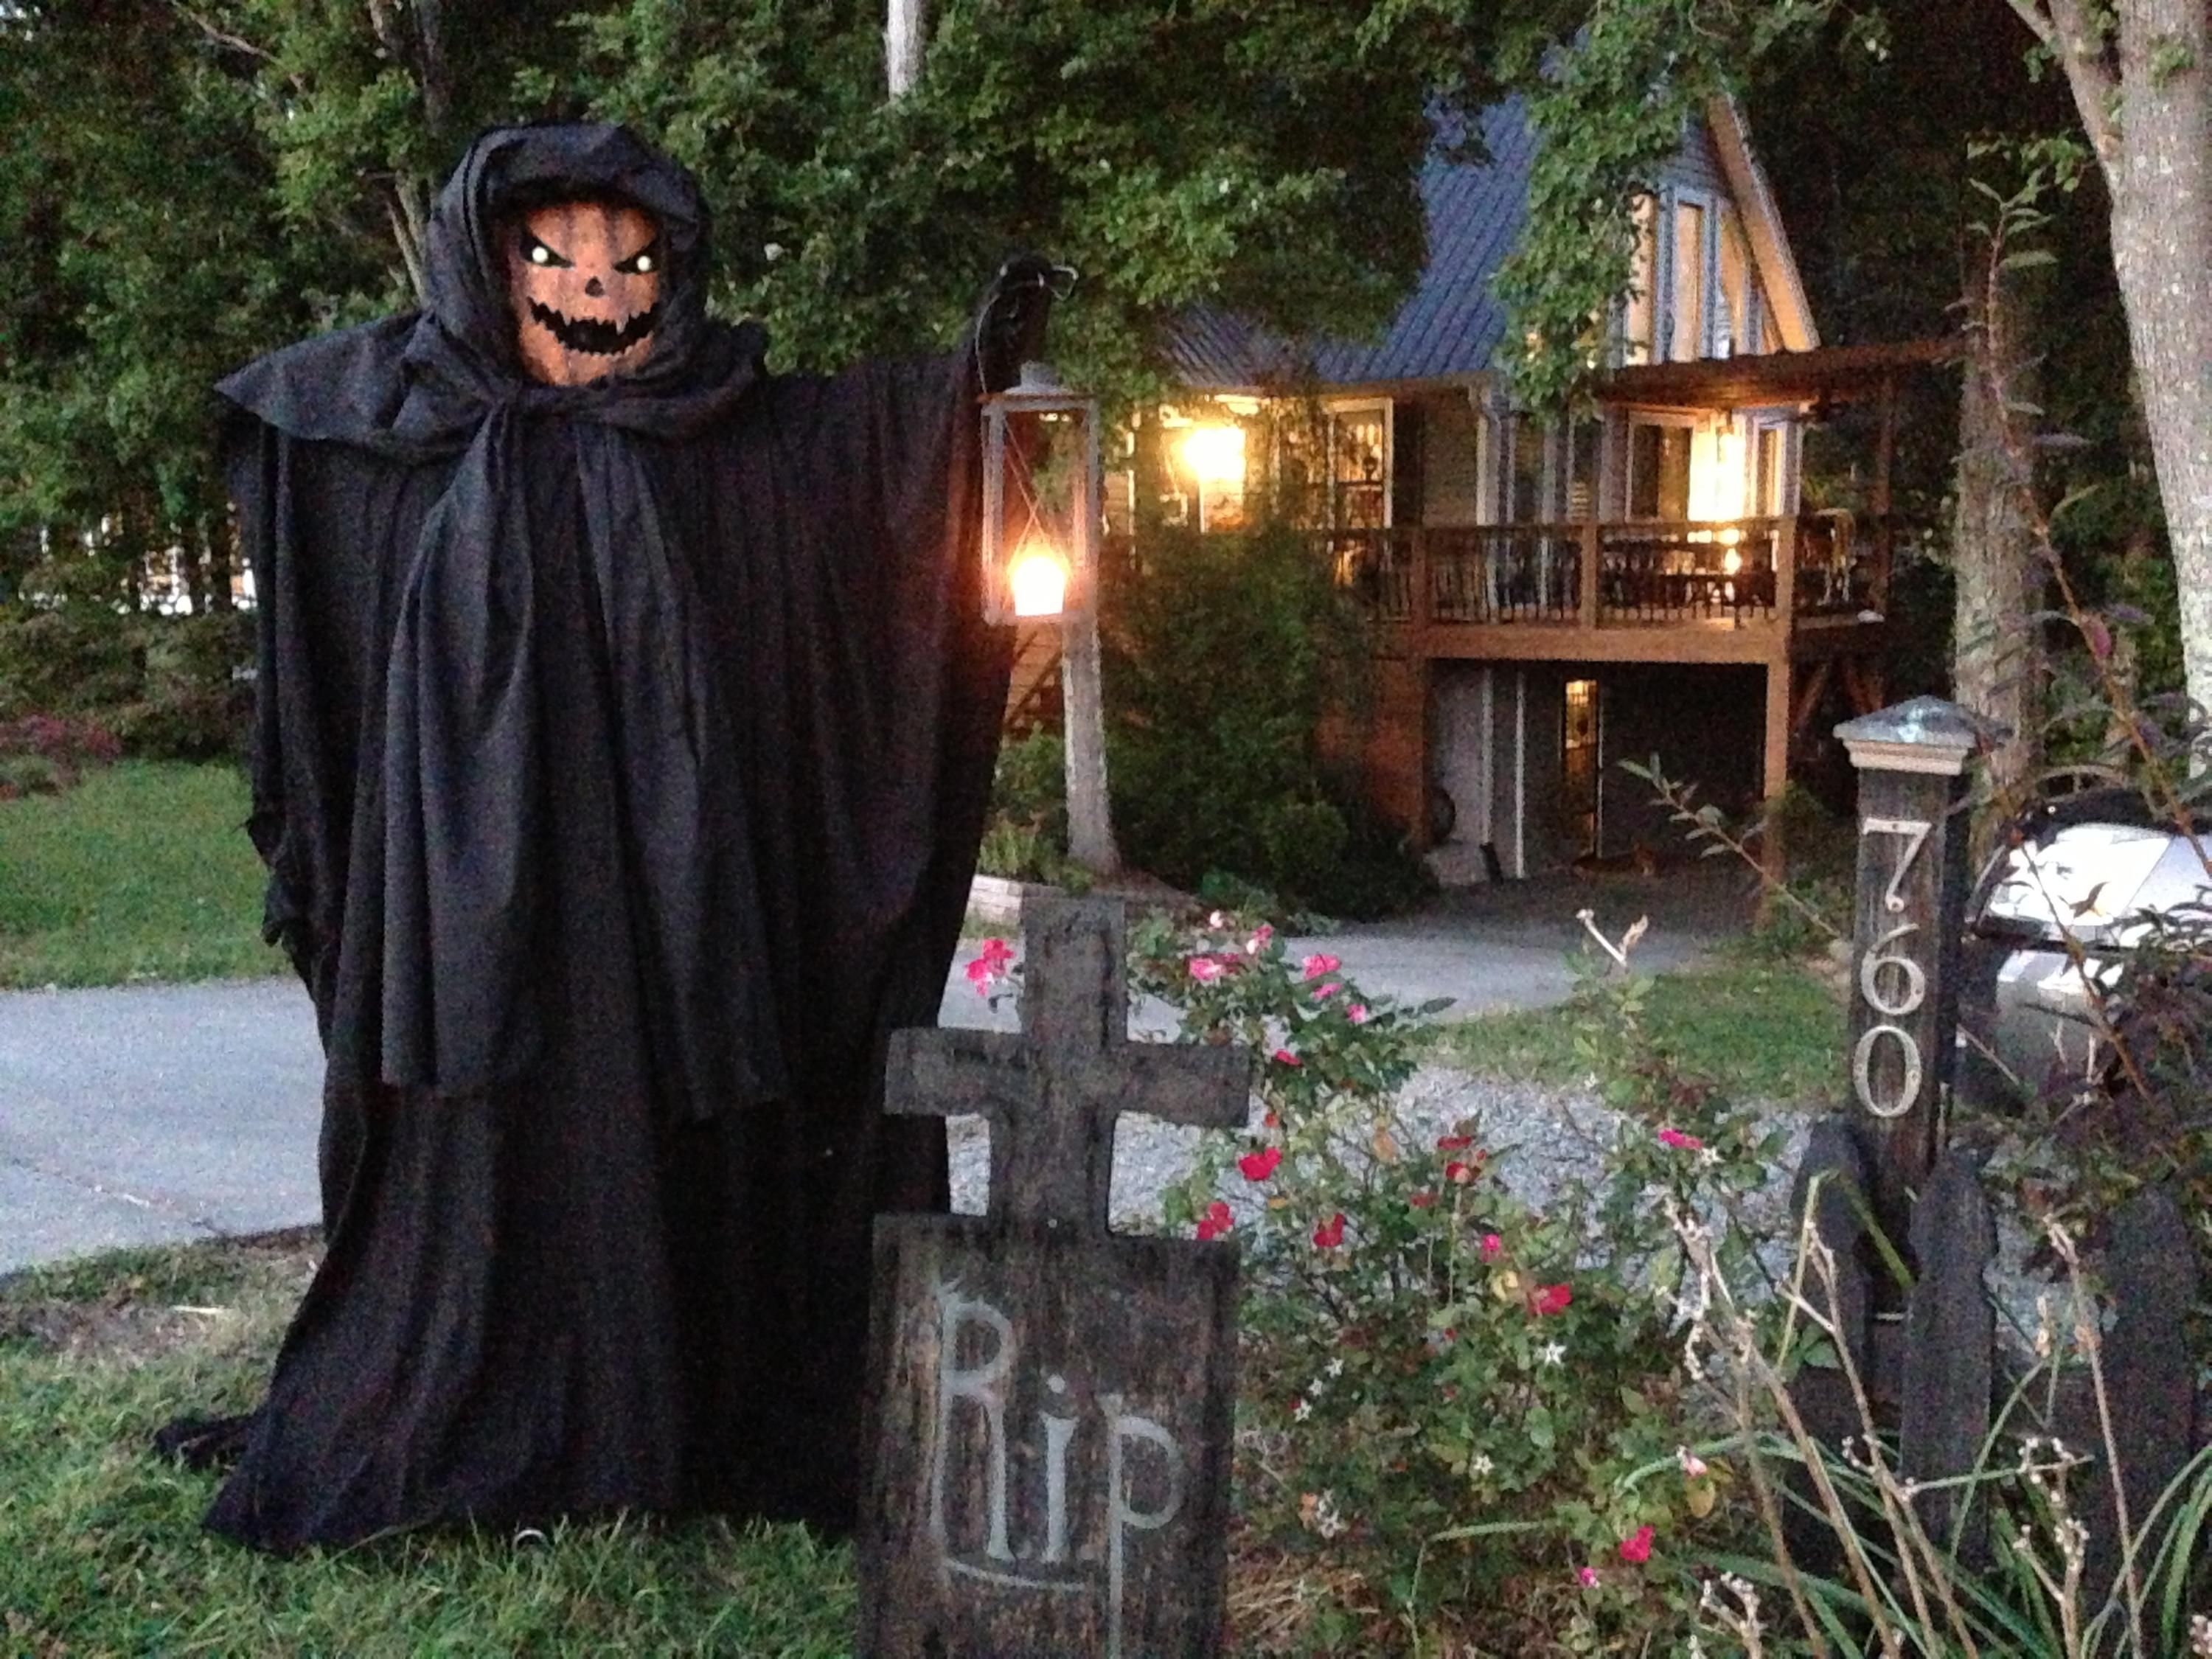 creepy halloween decorations outdoor with black scarecrow and